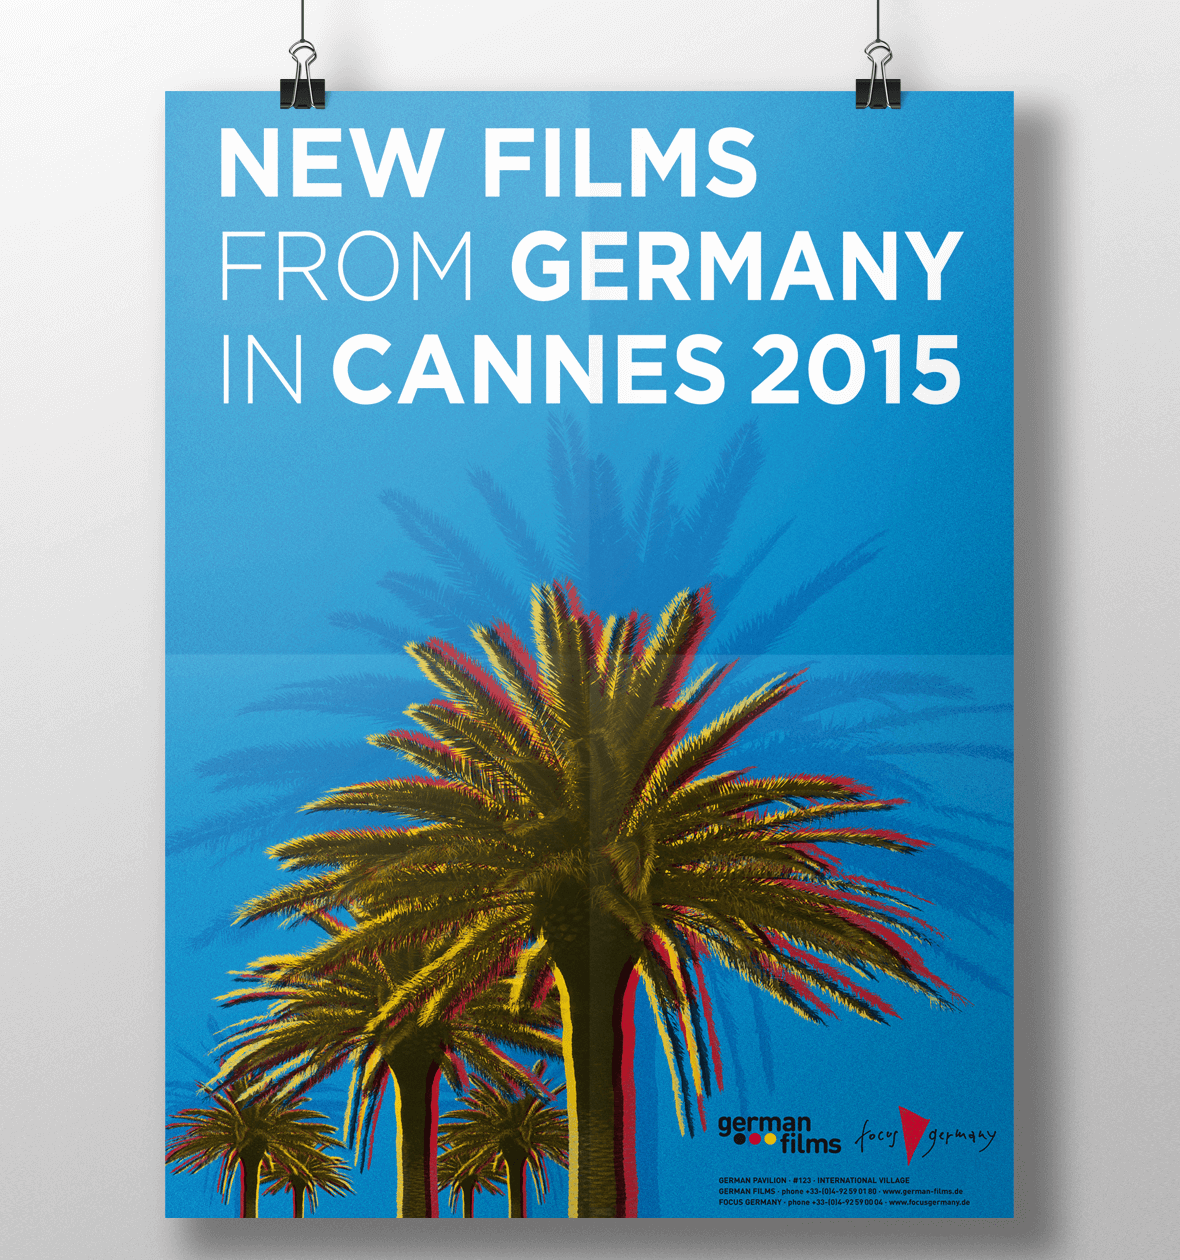 Imageposter German Films für Cannes 2015